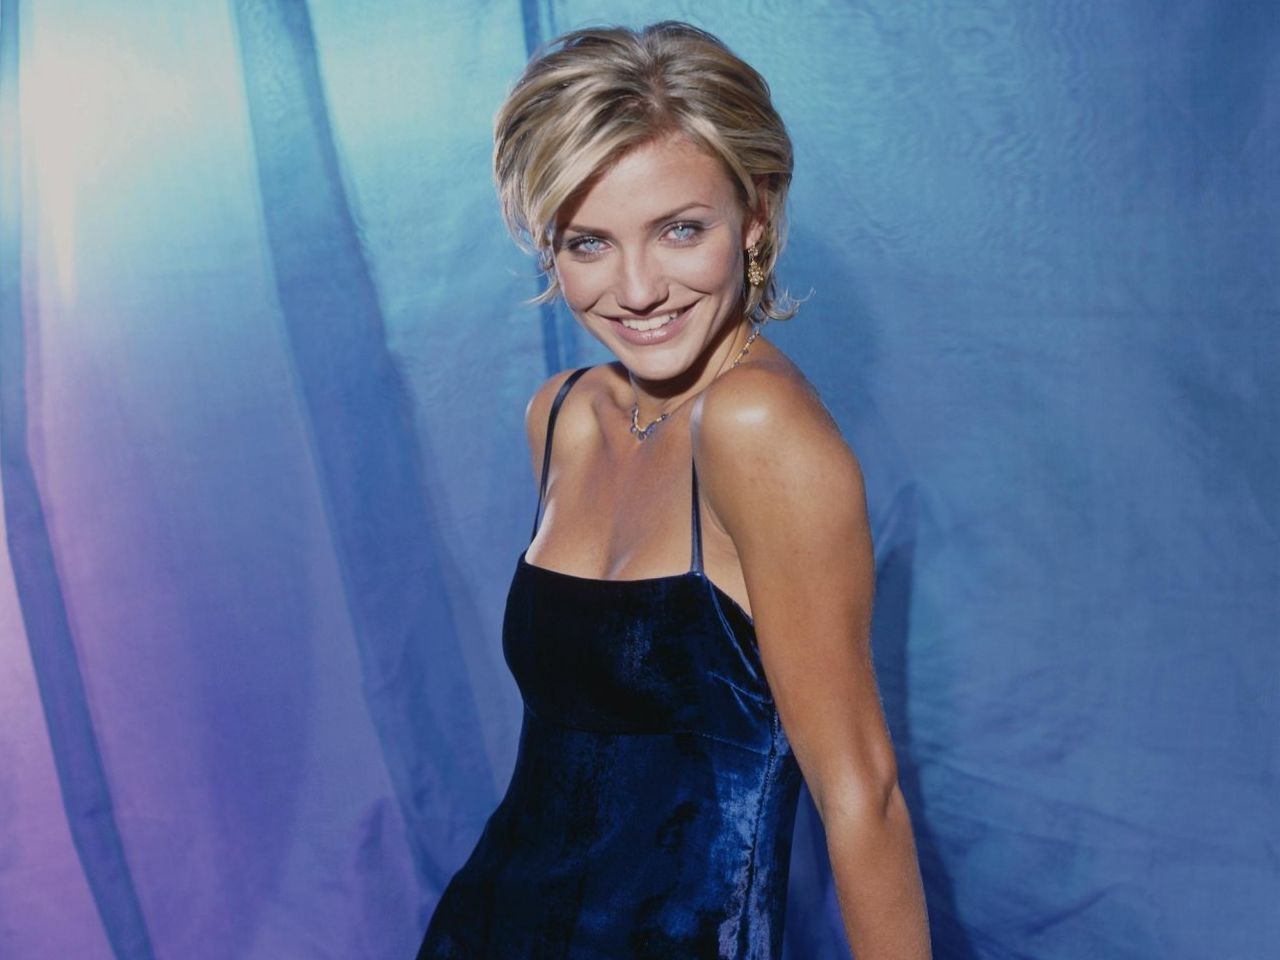 Girl Mask Wallpaper Cameron Diaz Wallpapers The Sexy Pictures